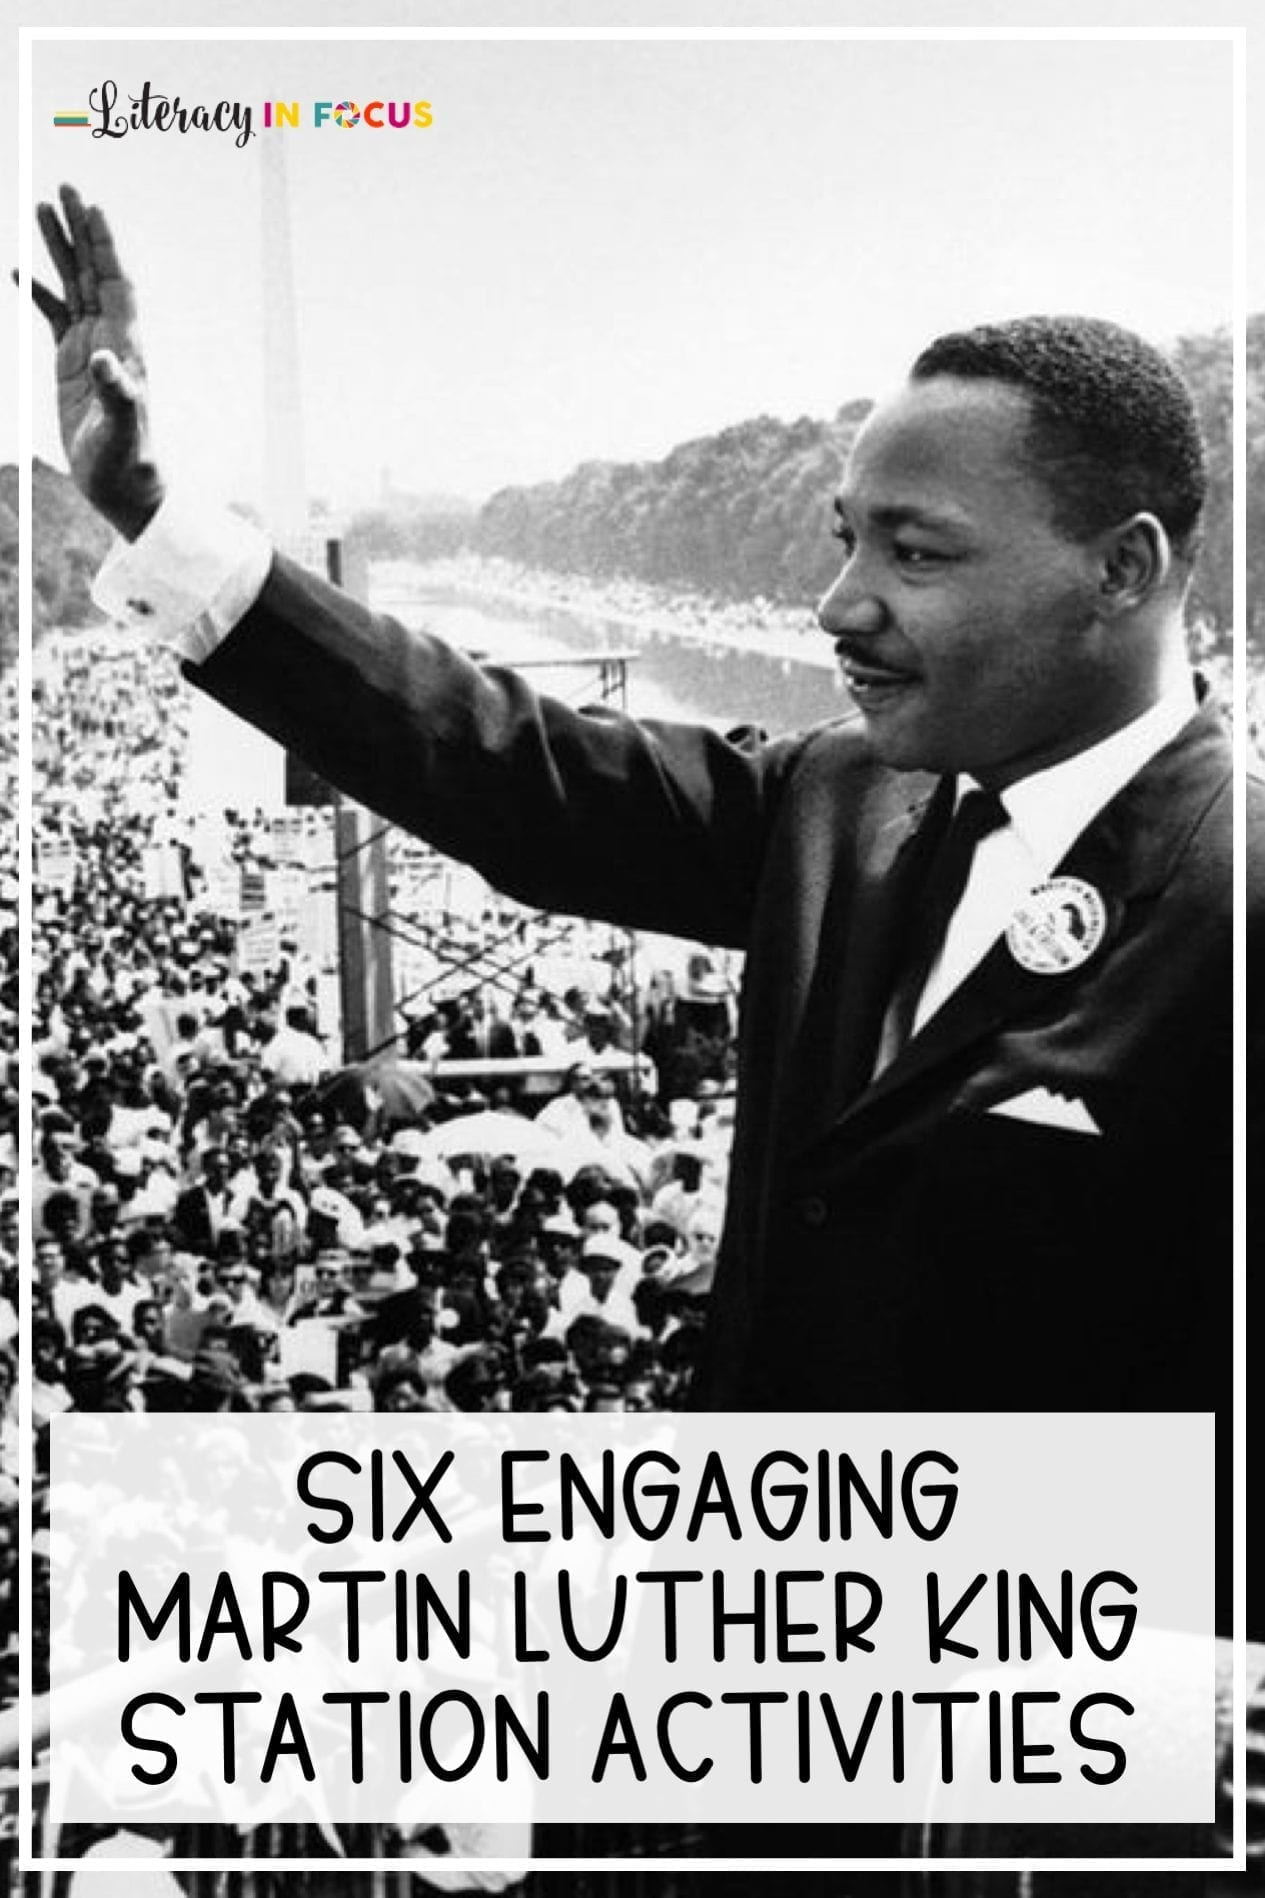 Six Engaging Station Activities for Martin Luther King Day